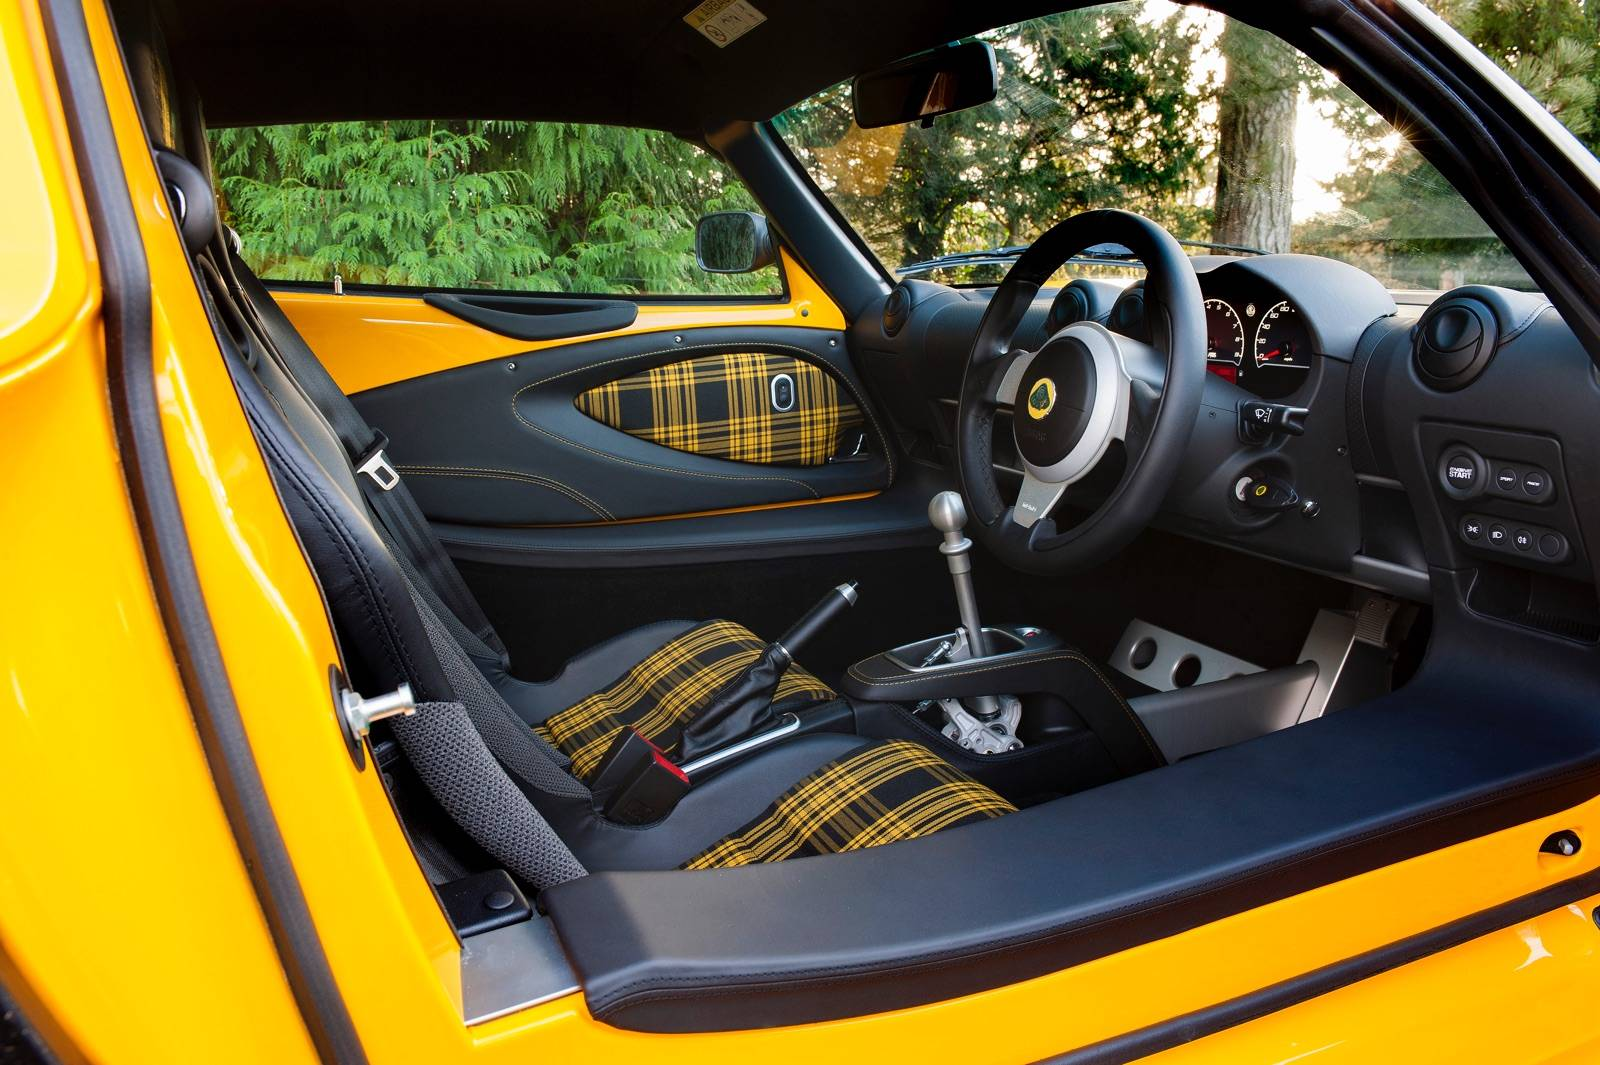 Third Generation Lotus Exige - This Is Lotus Exige Sport 350 6